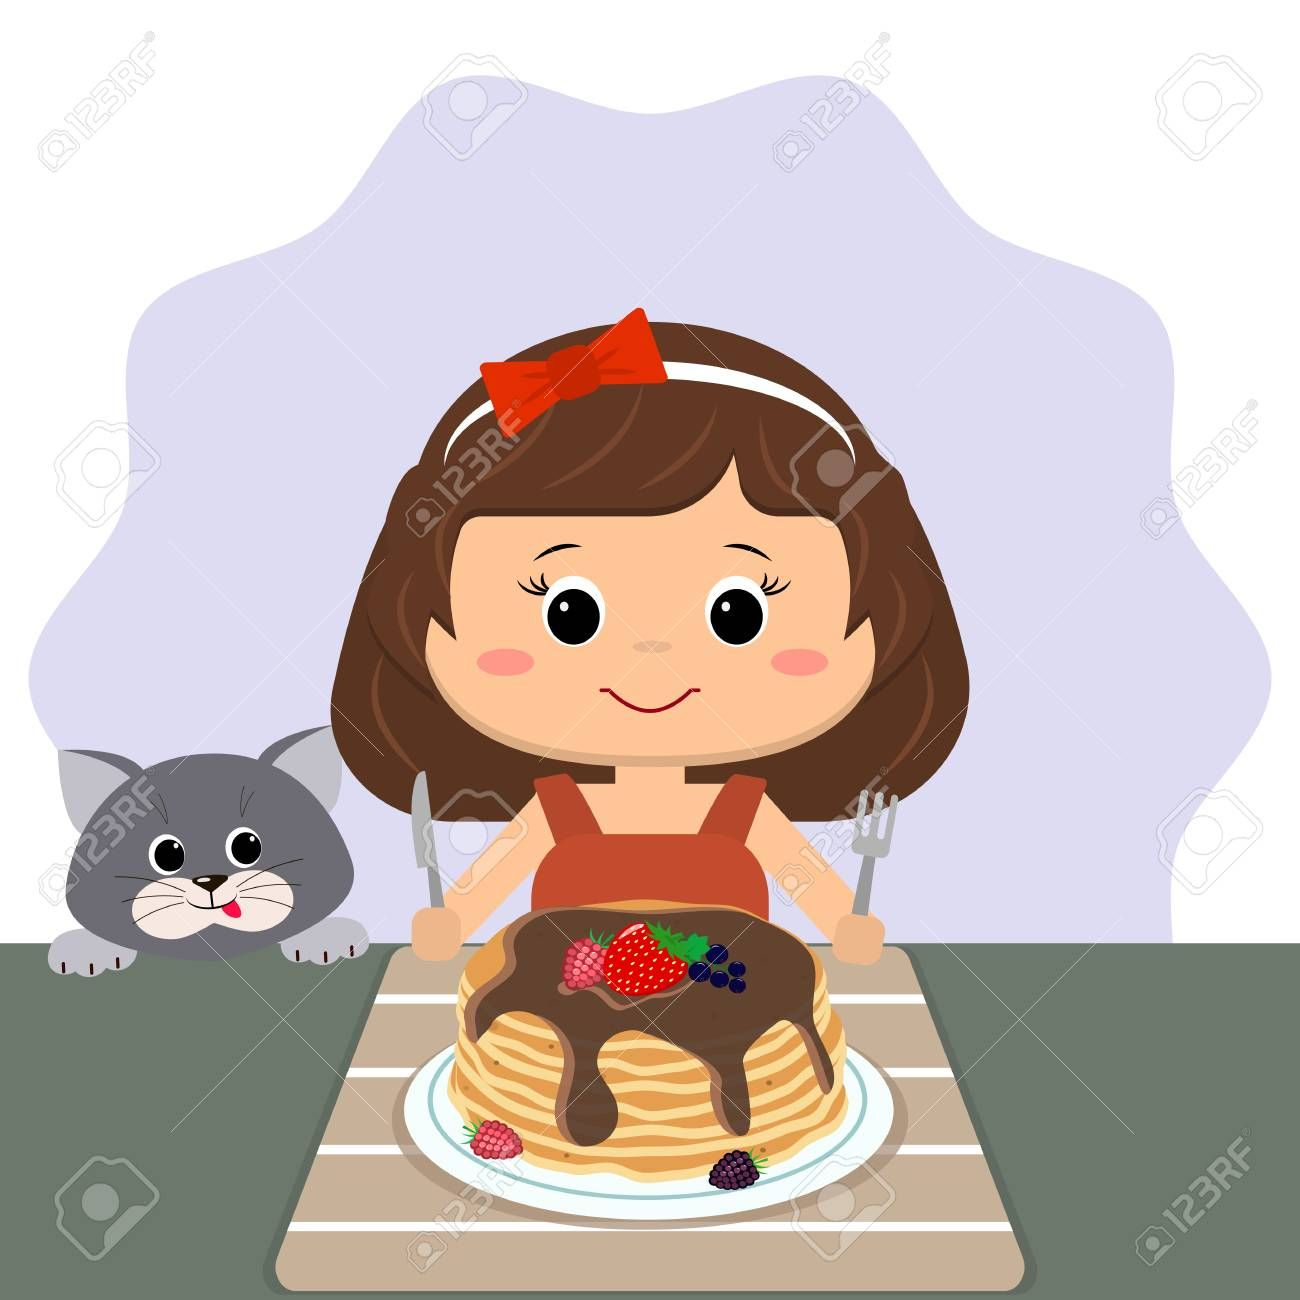 The girl is sitting at the table eating pancakes, the cat